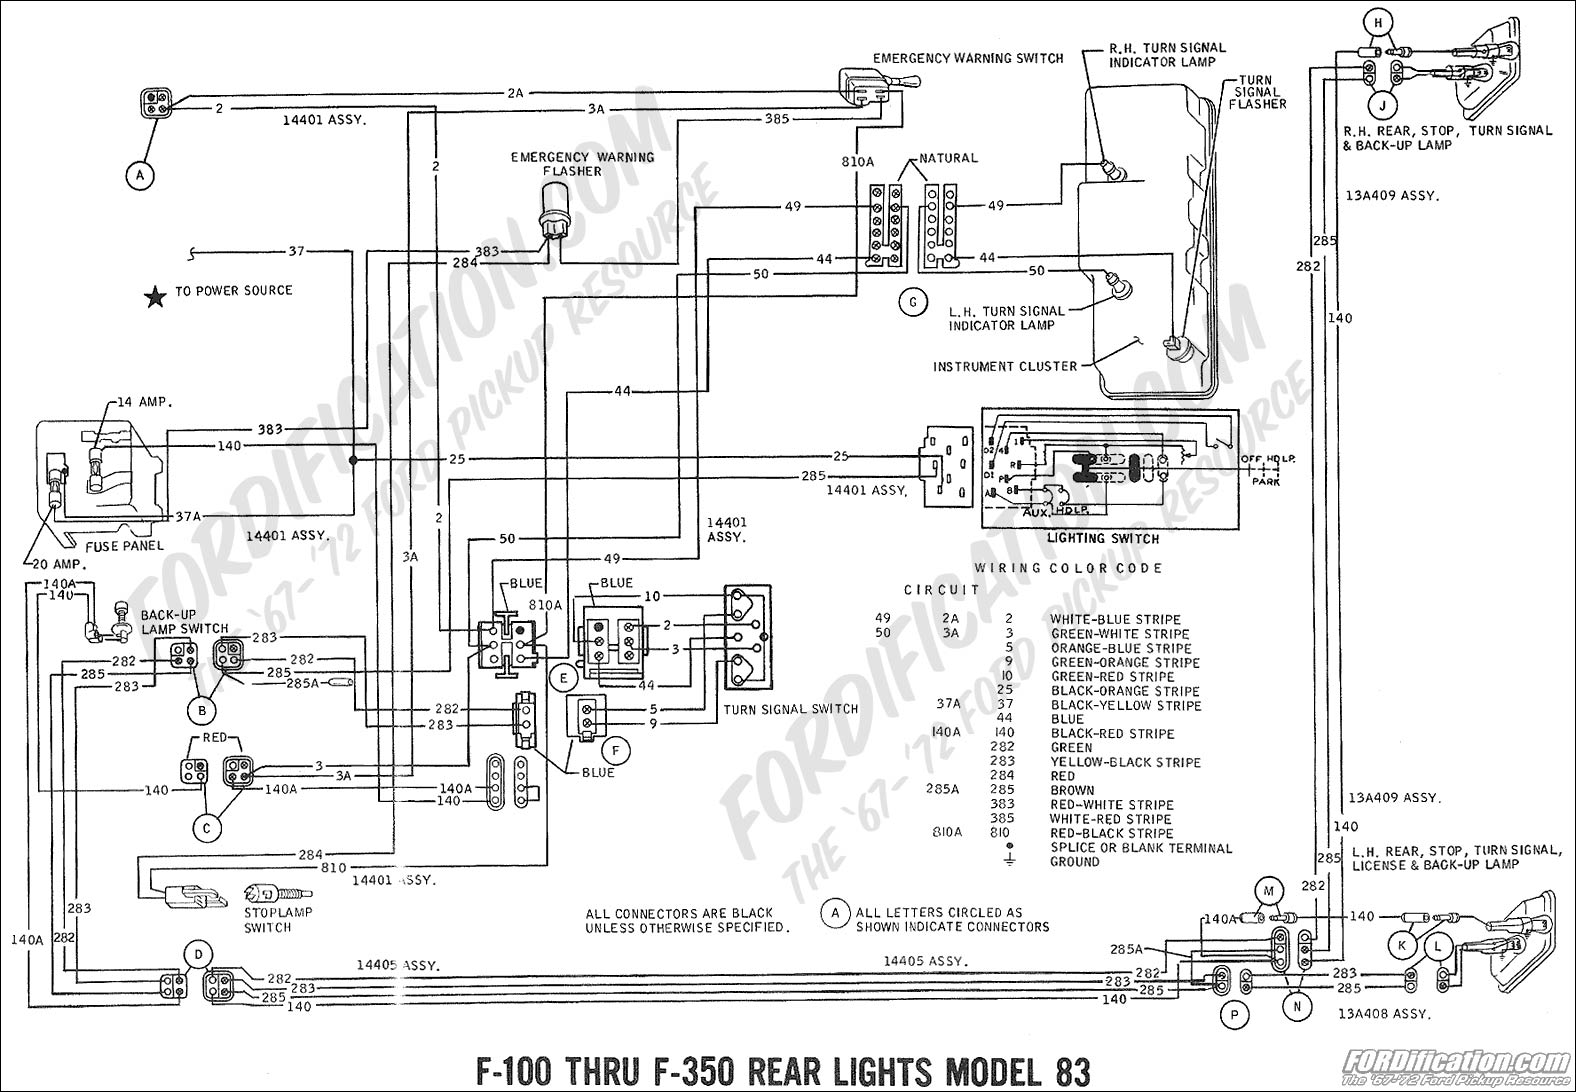 f700 wiring diagram 11 kenmo lp de \u2022